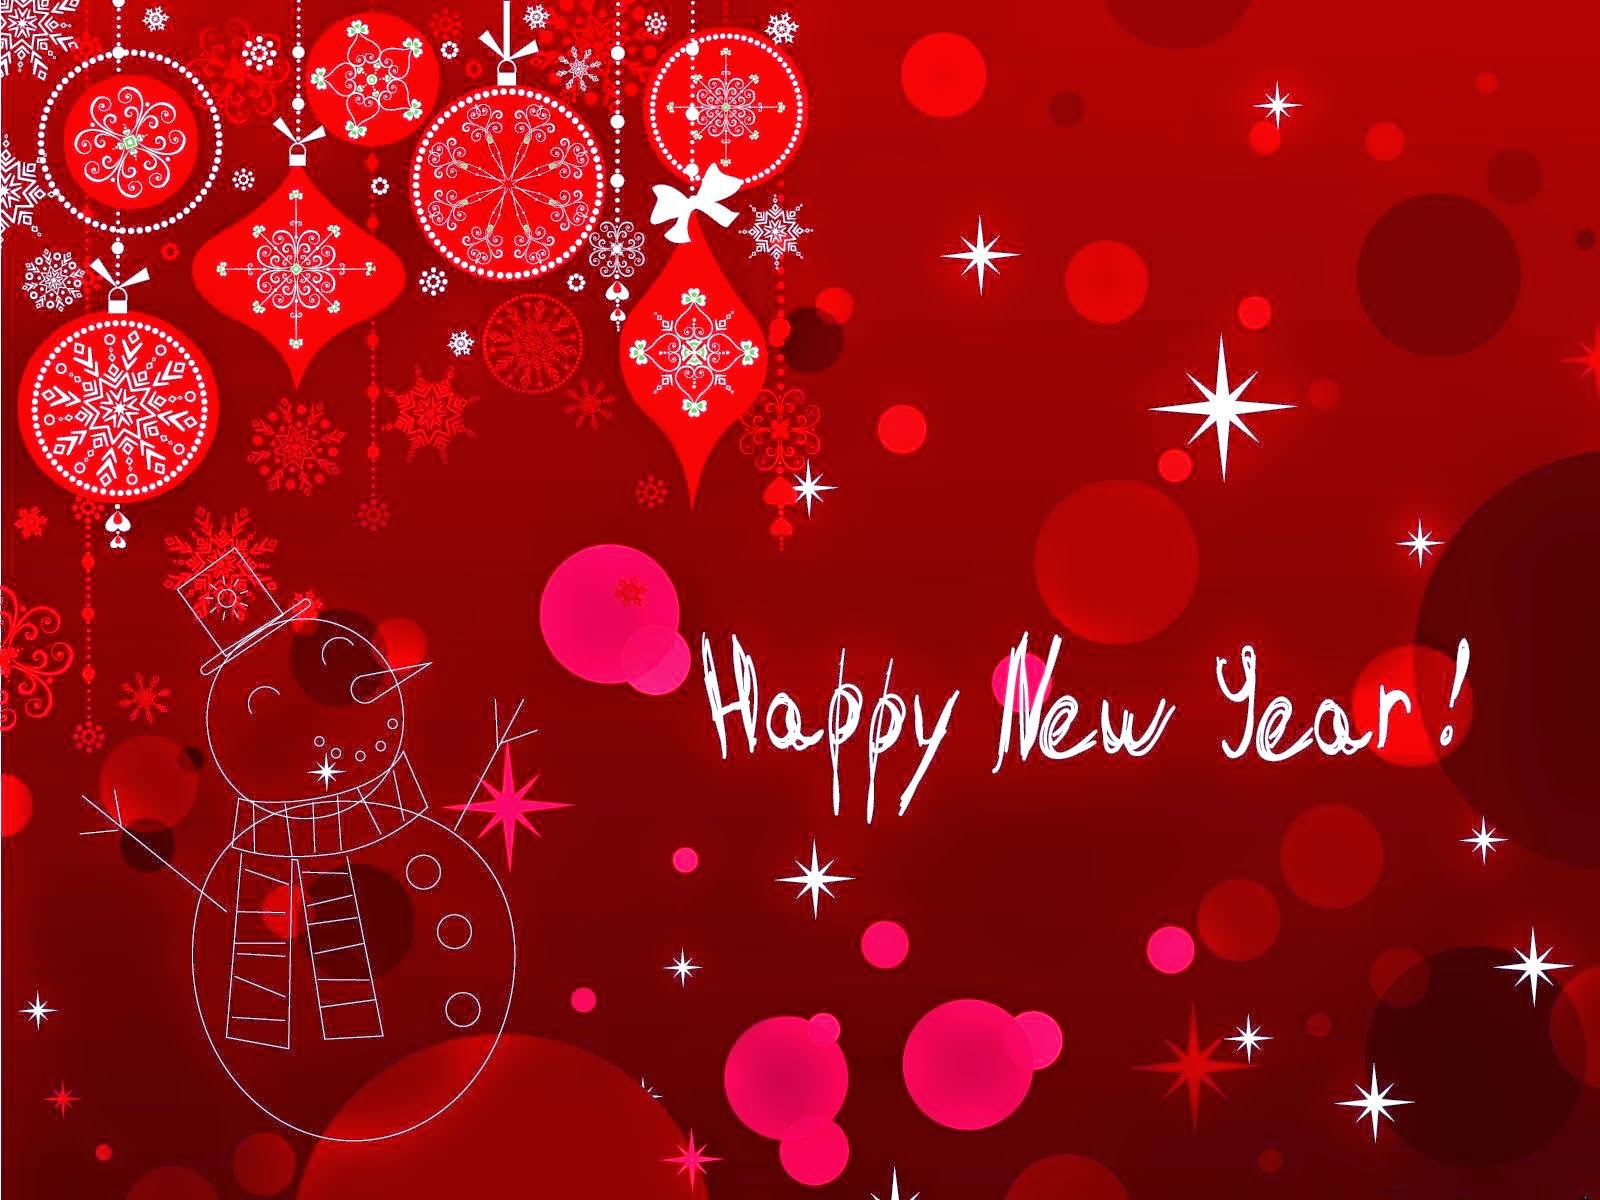 Happy New Year 2016 Images for Pinterest